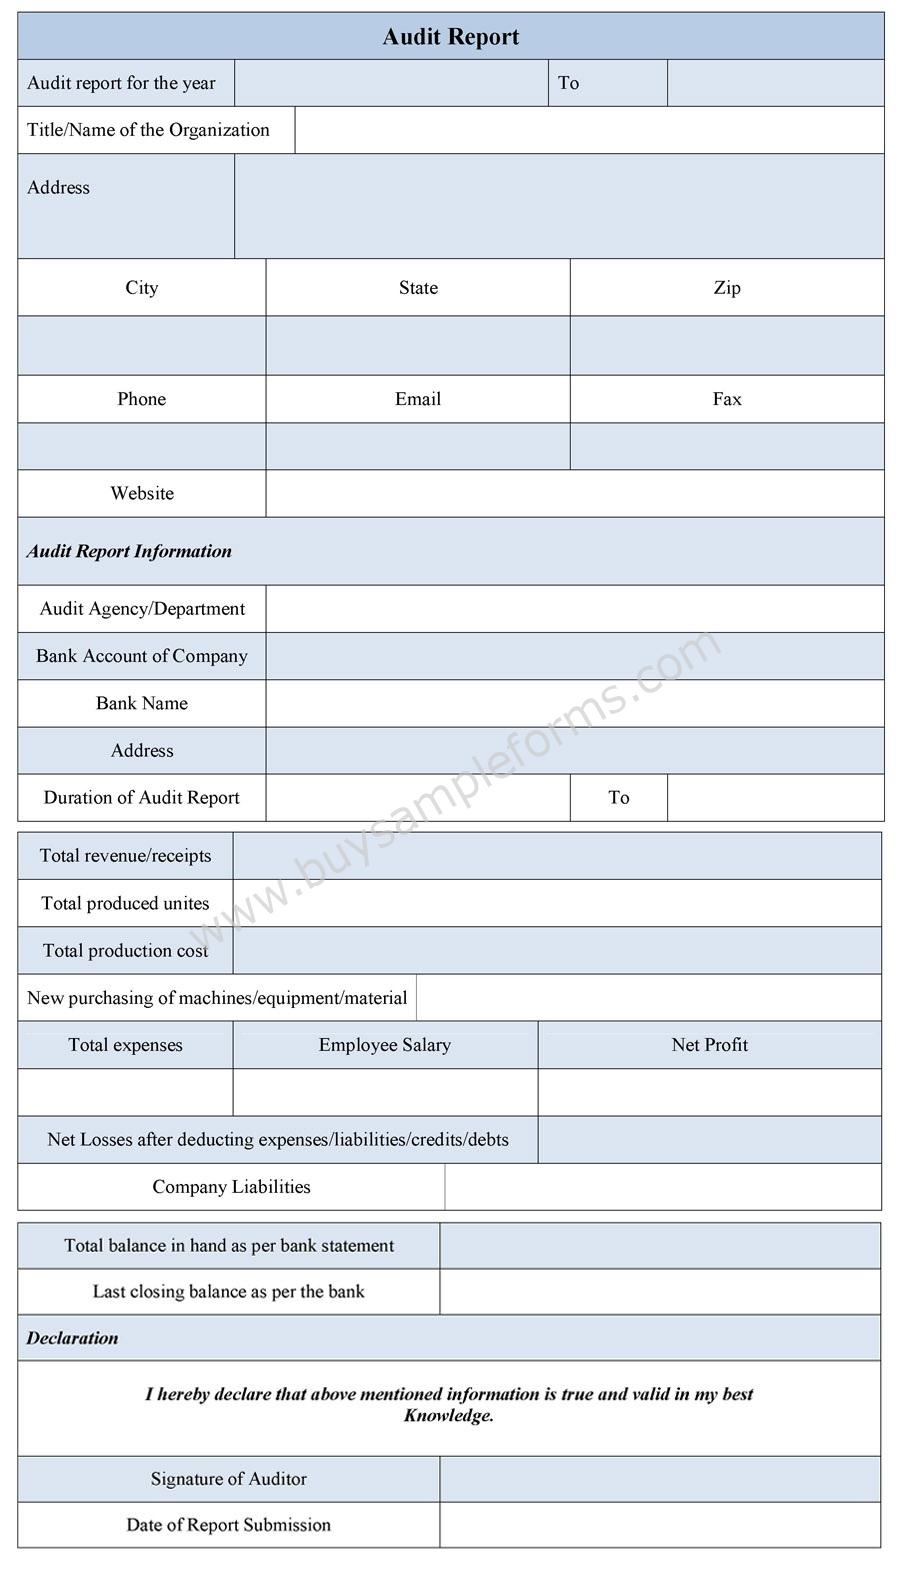 Audit Report Form Sample  Audit Report Formats